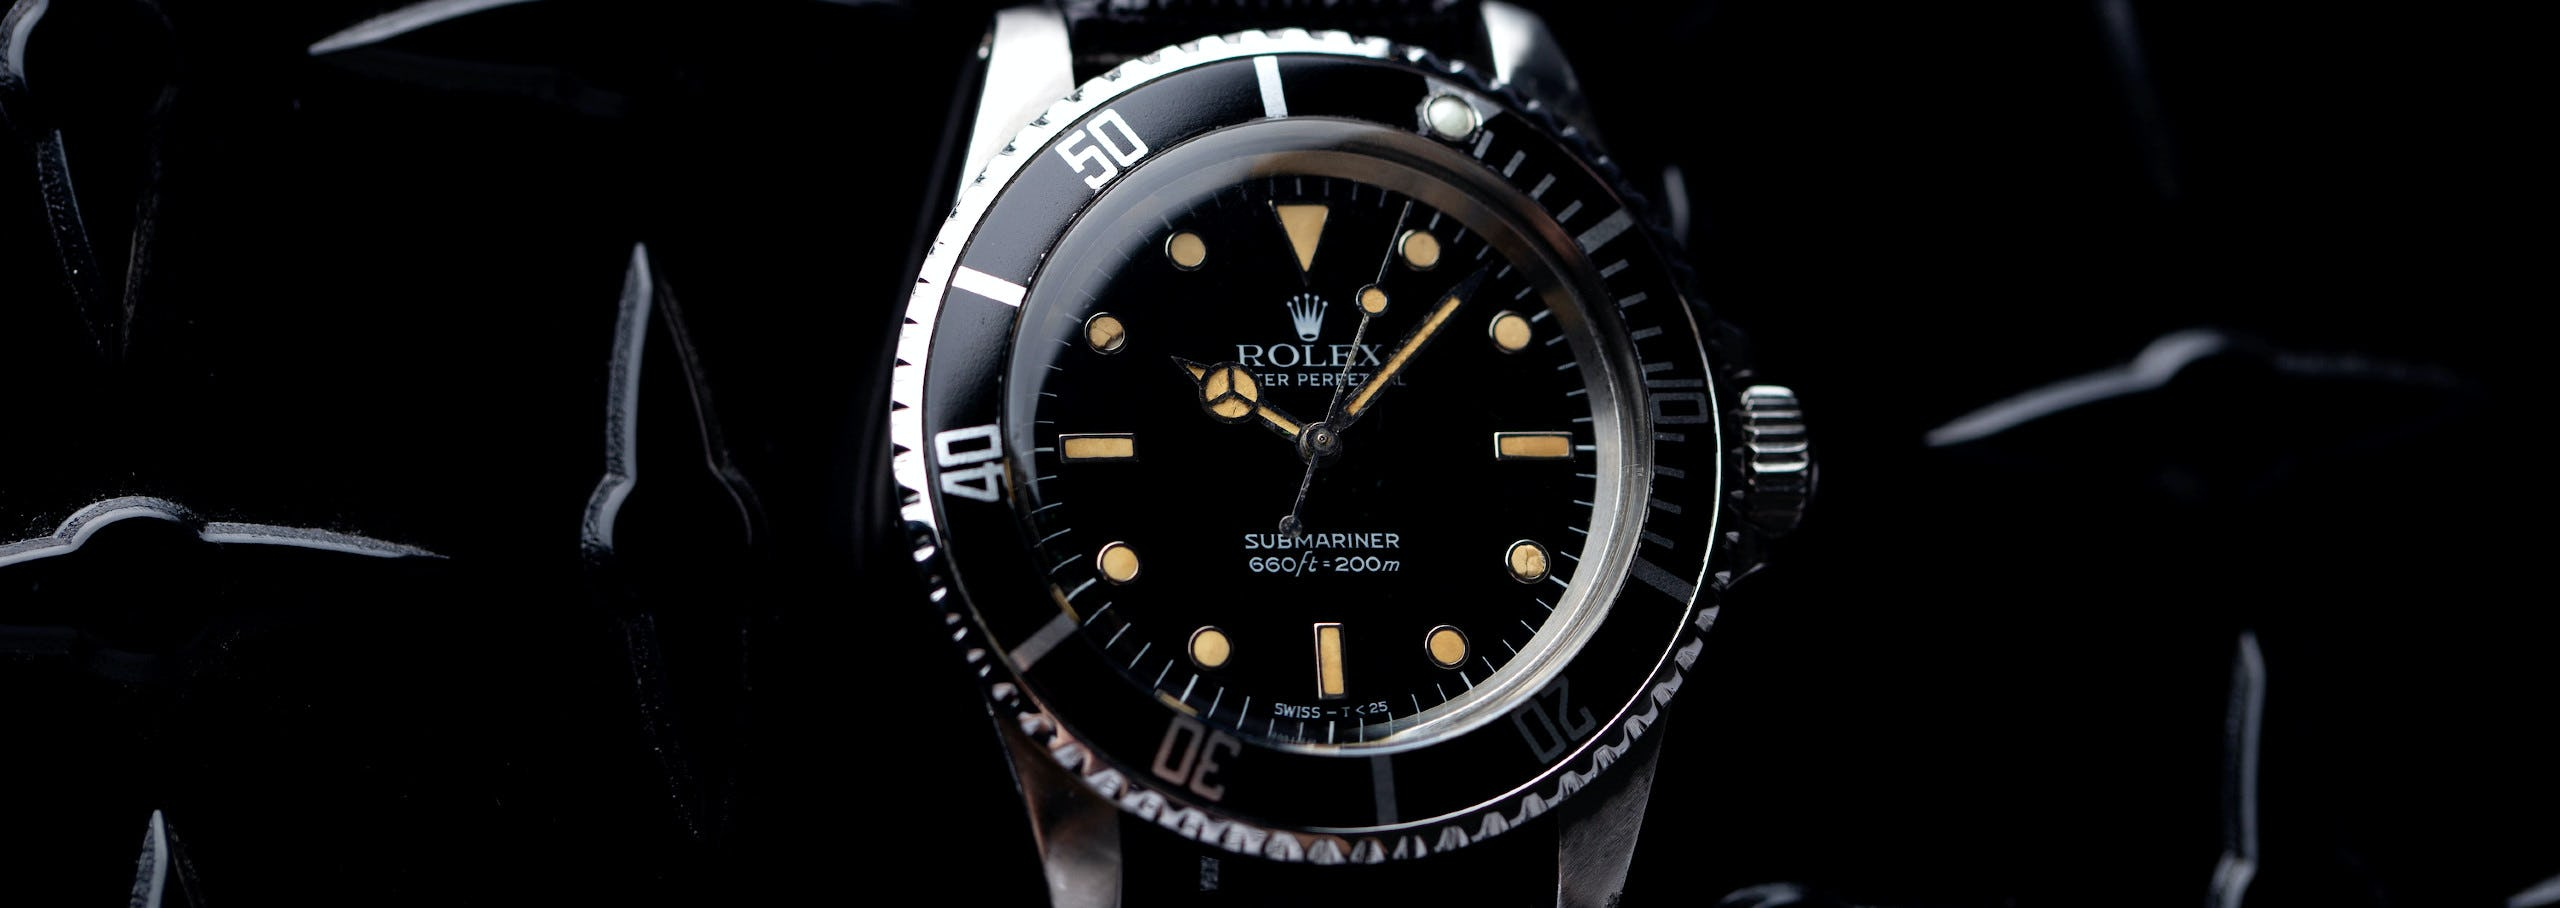 Everything You Need to Know About the Rolex Submariner